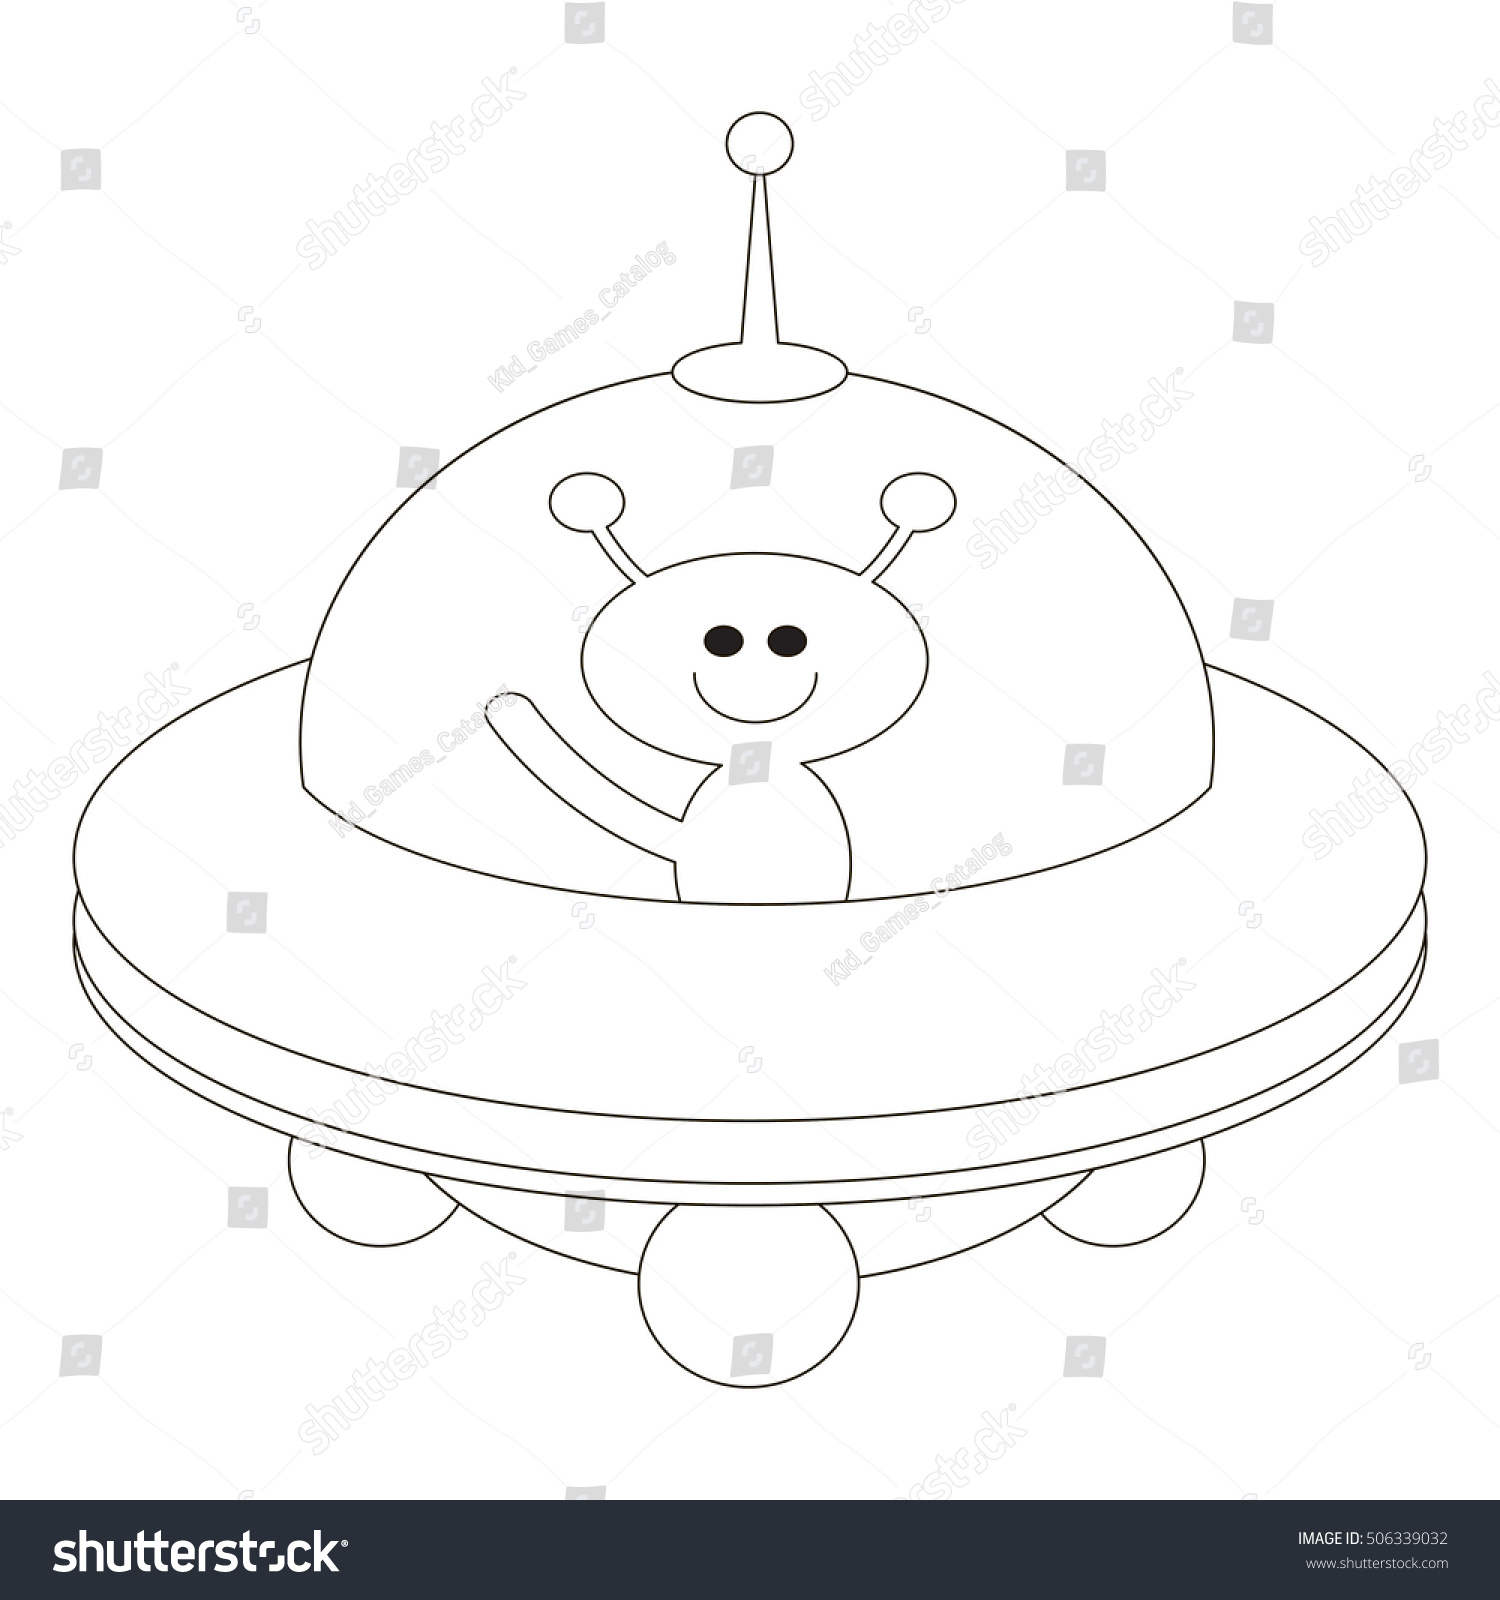 Ufo Be Colored Coloring Book Educate Stock Vector Royalty Free